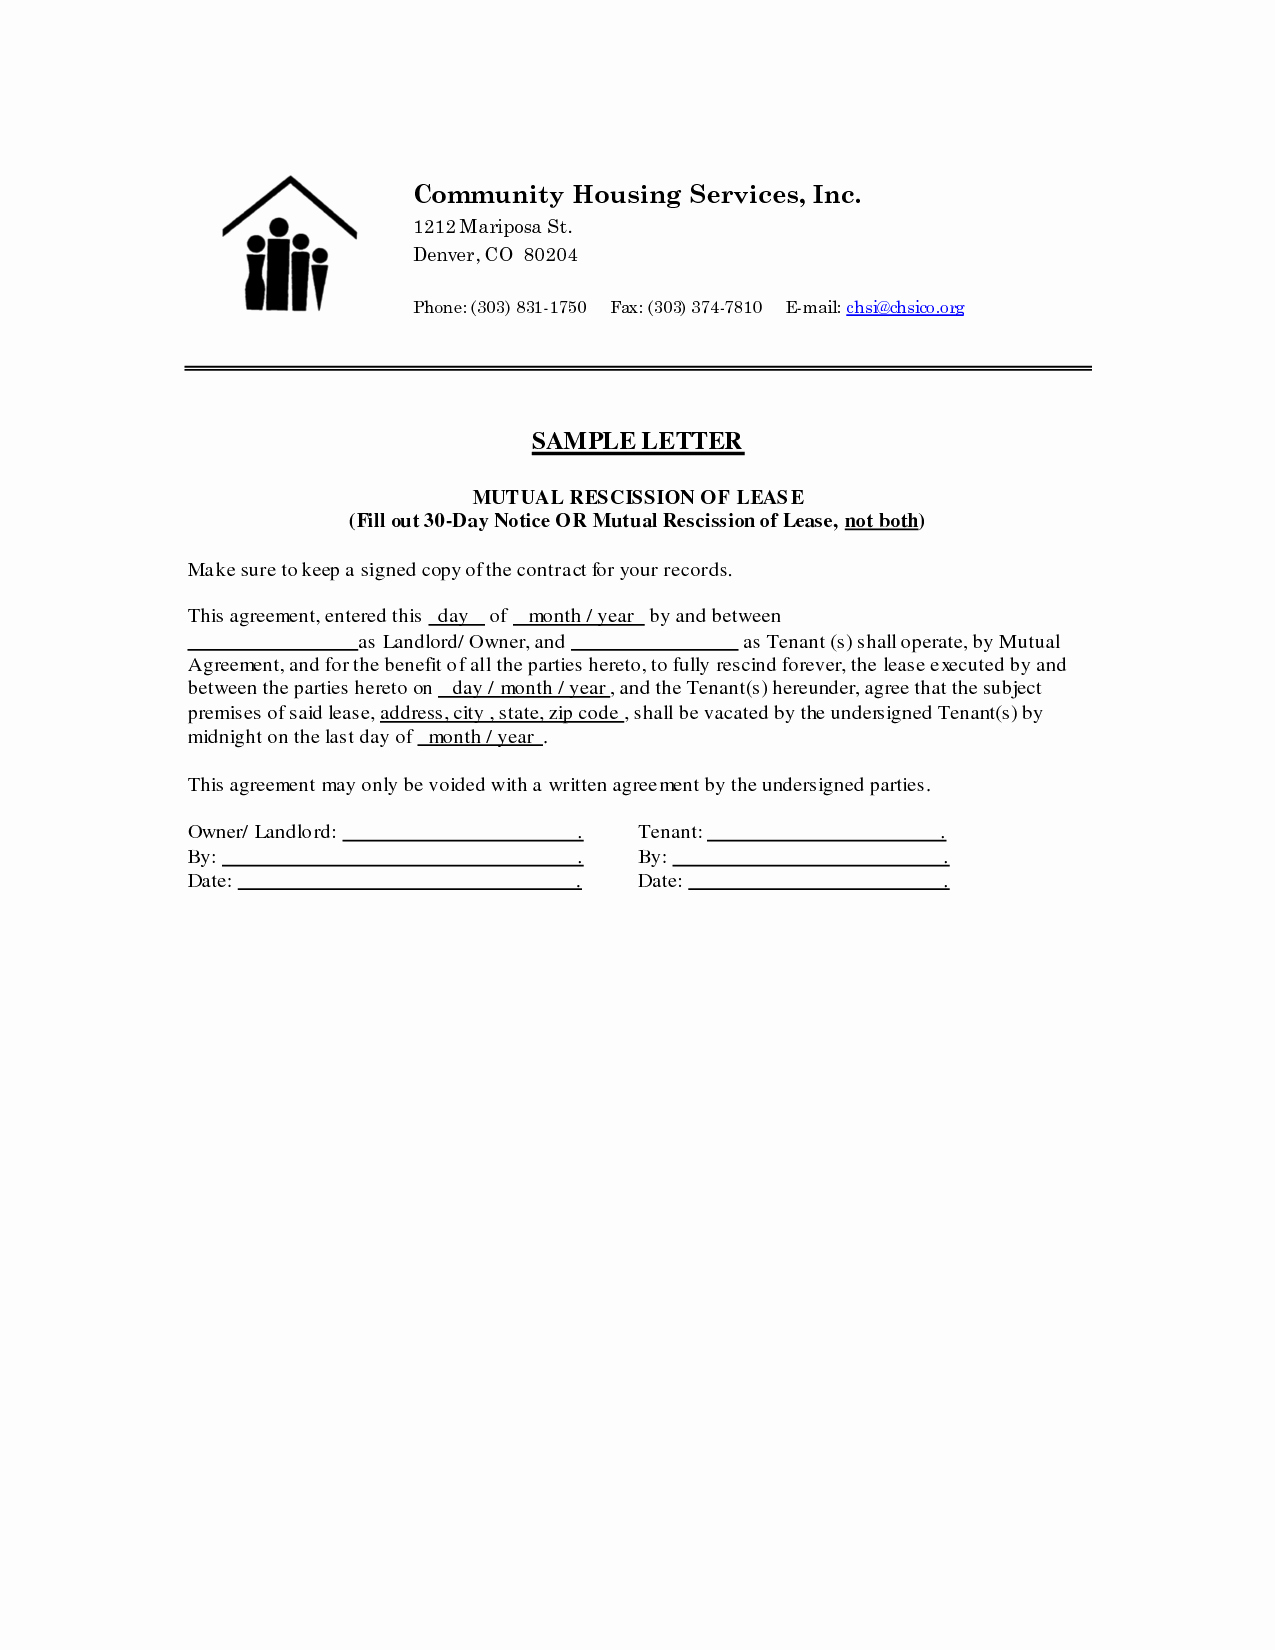 Rescission Letter Template - 20 Notice Lease Termination Letter